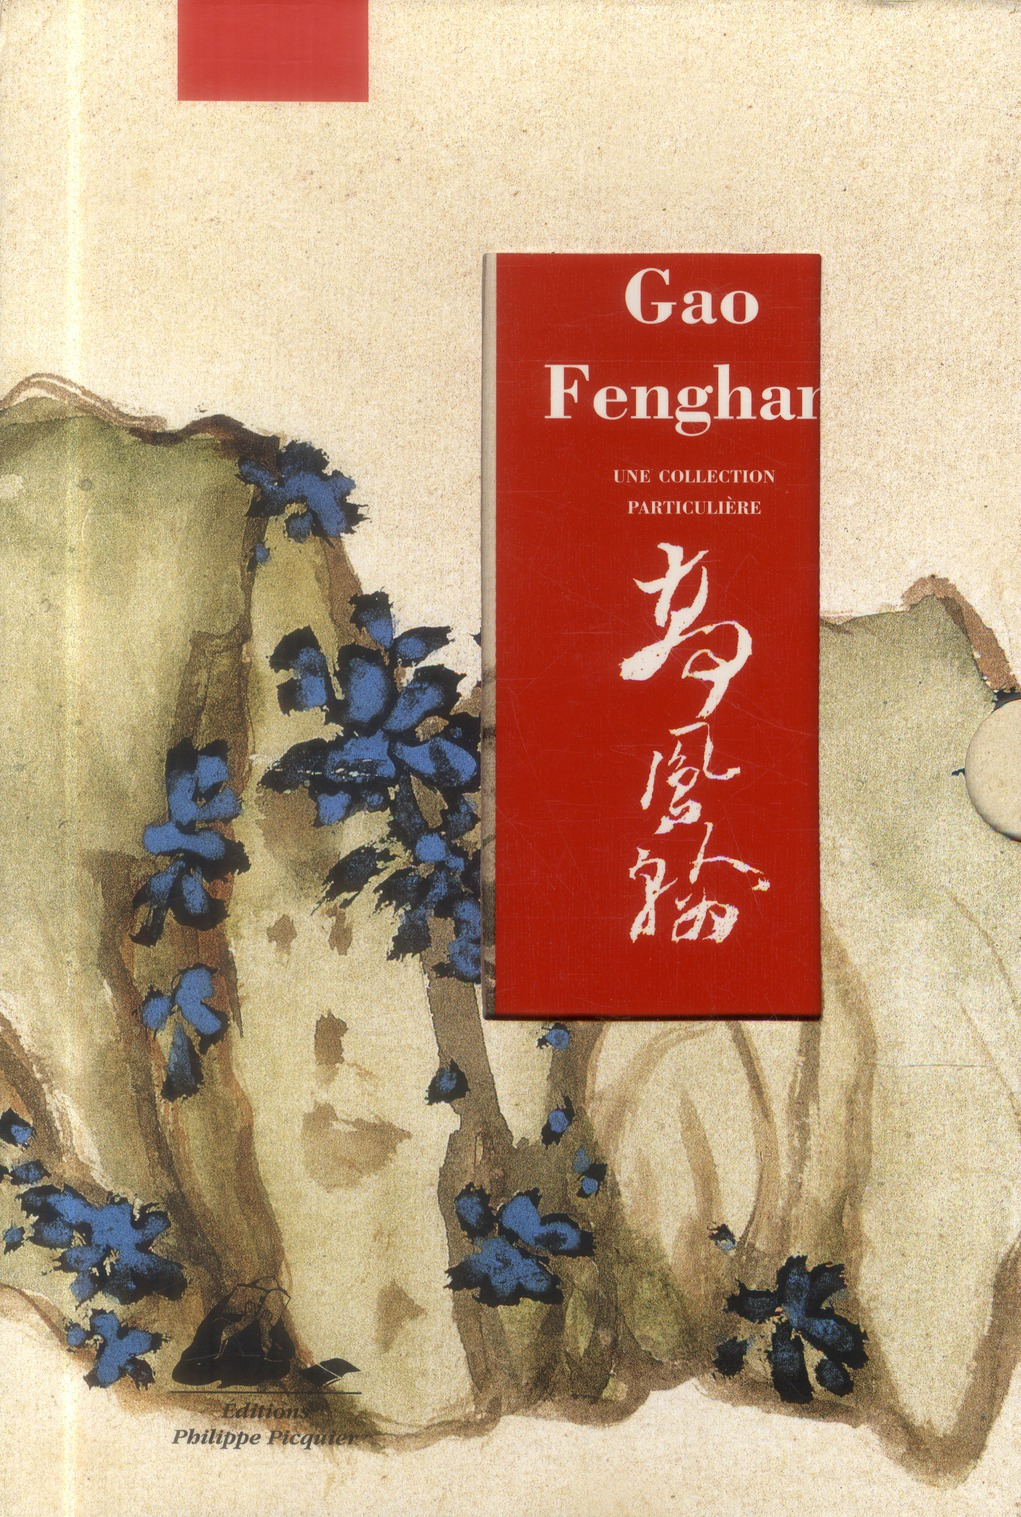 GAO FENGHAN - ZHANG ZONGCANG - COLLECTION PARTICULIERE